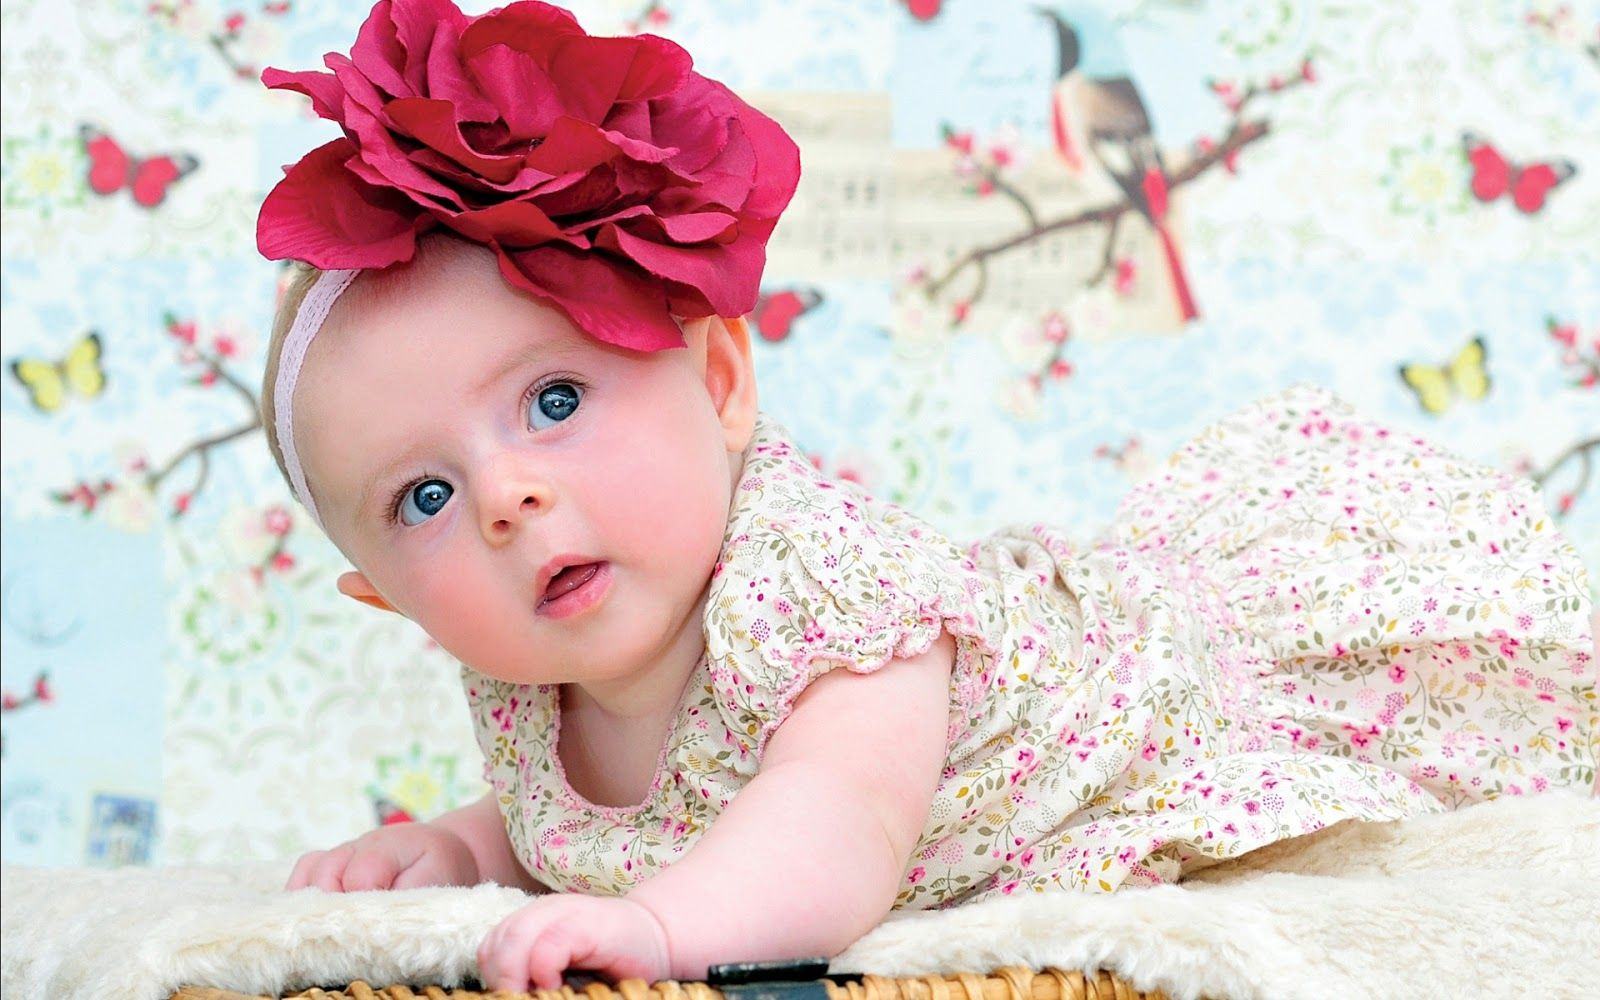 cute baby picture hd wallpaper free download 3d | android